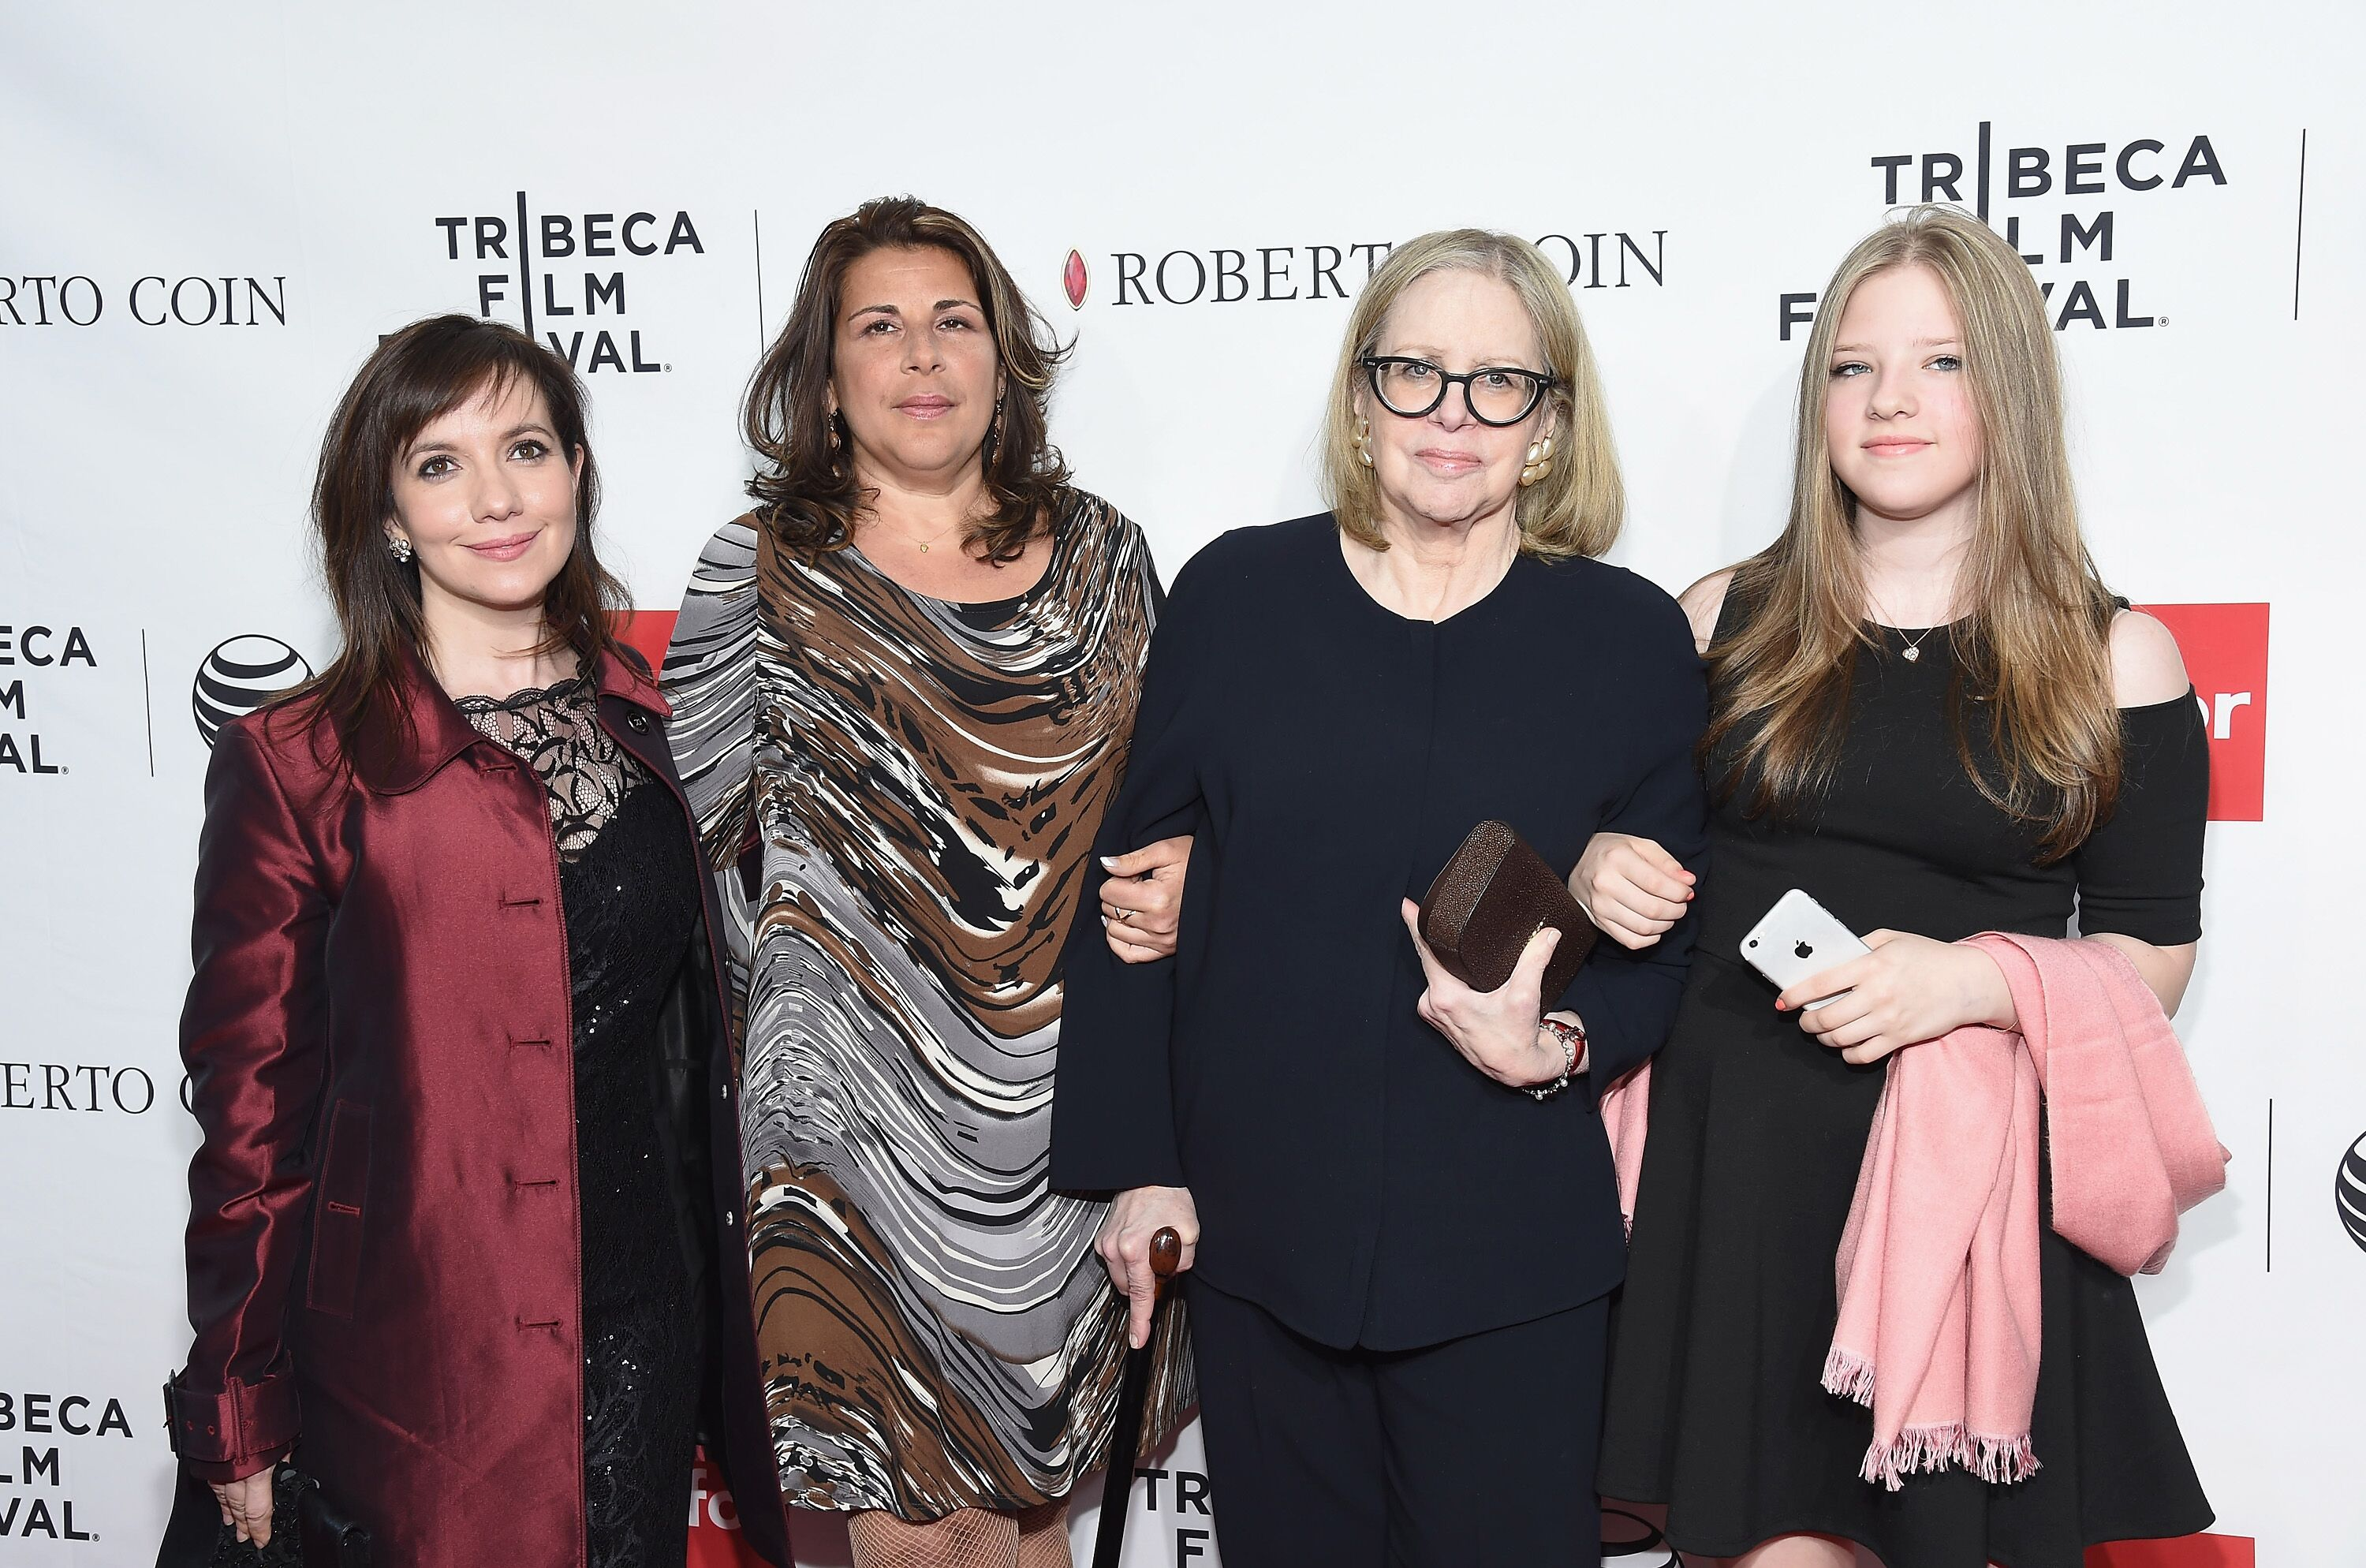 Domenica Cameron-Scorsese, Cathy Scorsese, Helen Morris and Francesca Scorsese attend the closing night screening of 'Goodfellas' during the 2015 Tribeca Film Festival at Beacon Theatre. | Source: Getty Images